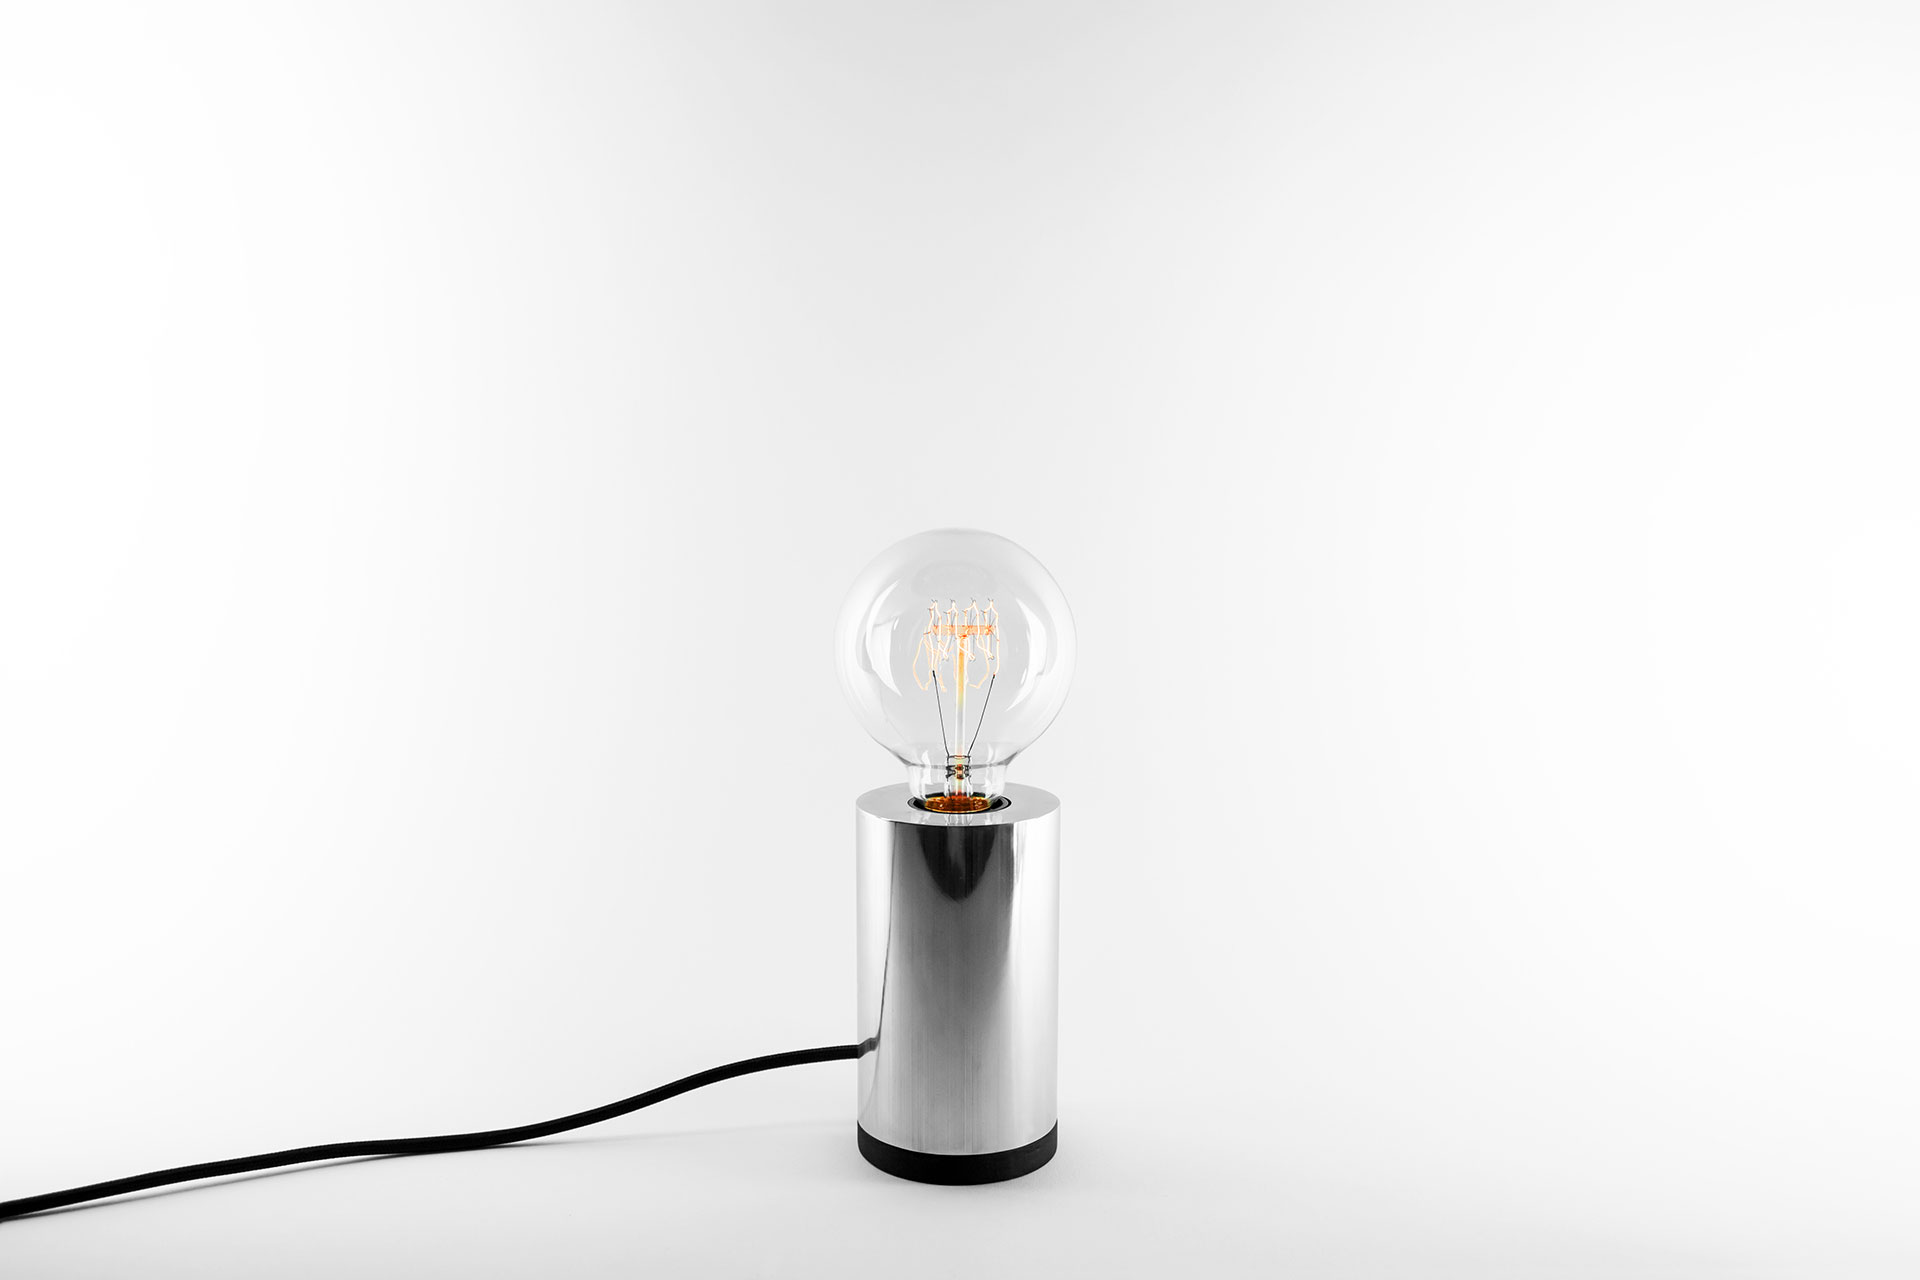 Dimmable bedside lamp in silver color with vinatge Edison bulb inapired by scandinavian design